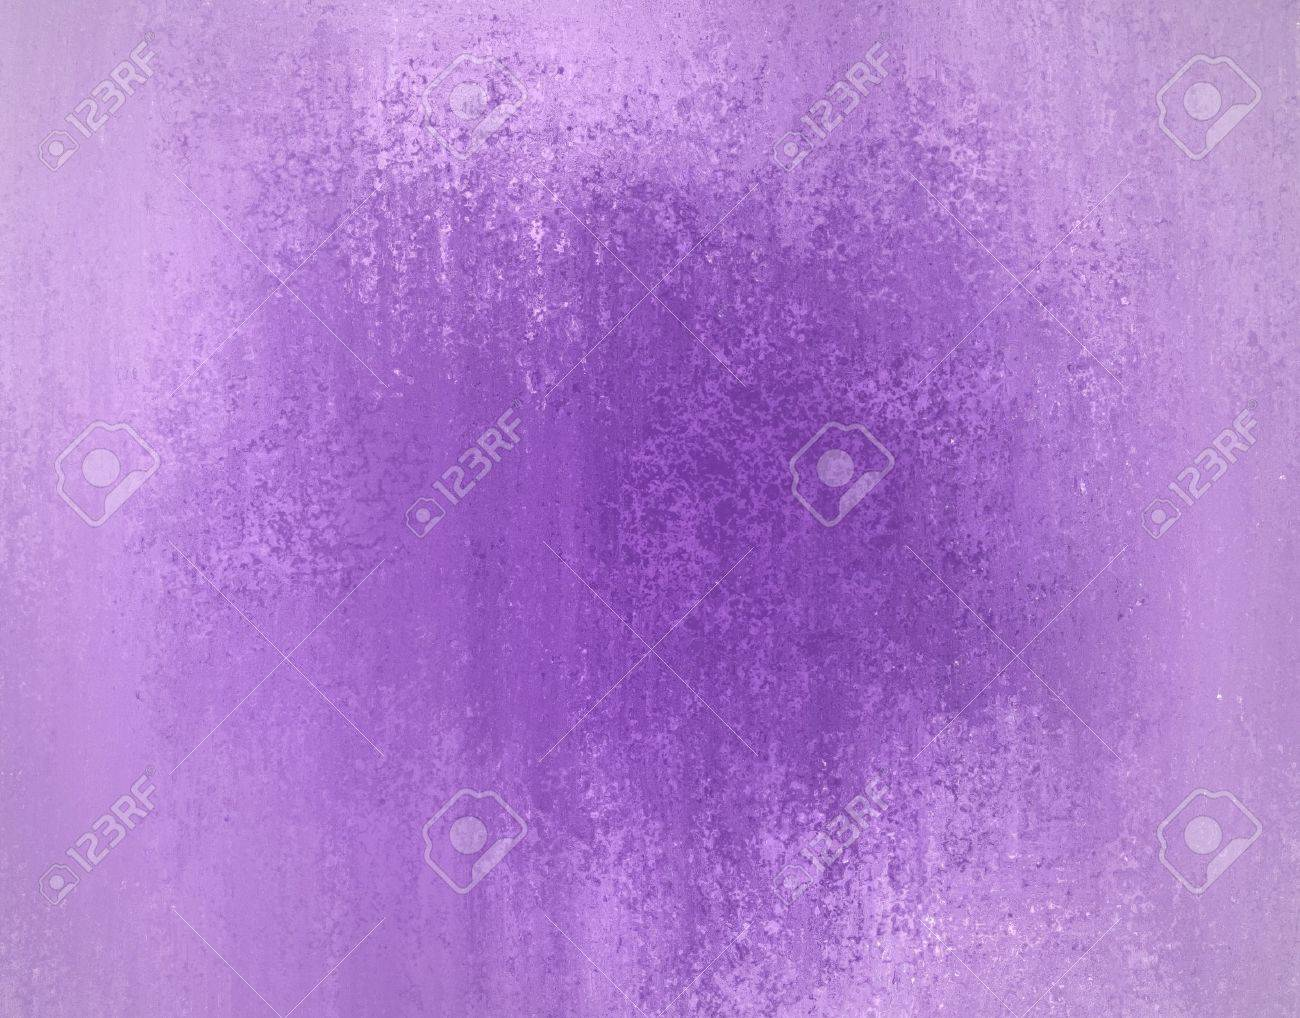 abstract purple background with vintage grunge background texture and faded white border Stock Photo - 15308358